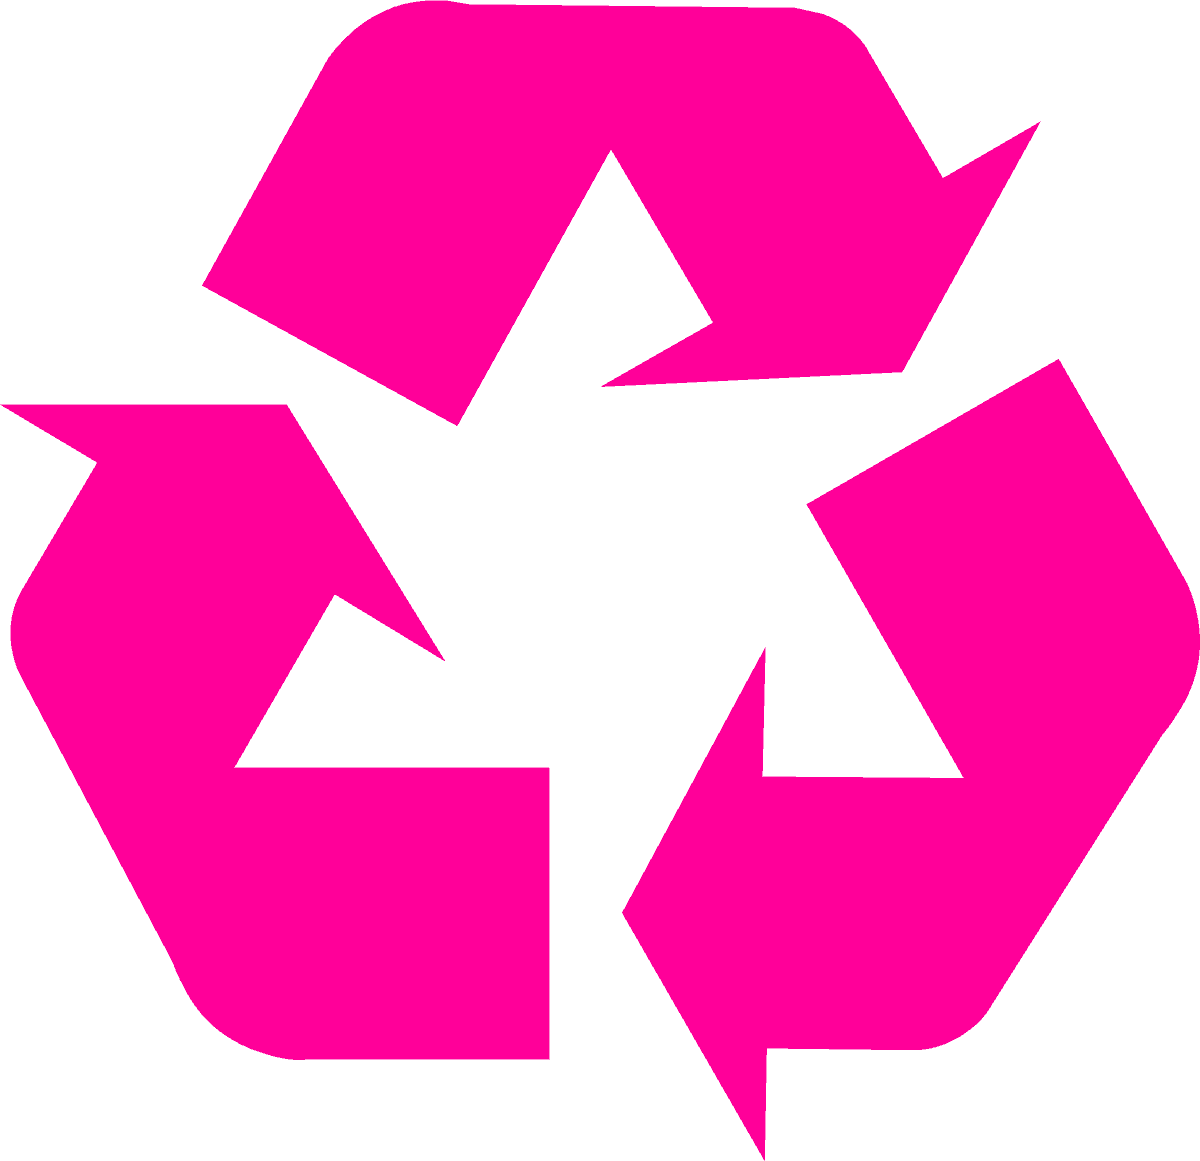 recycling-symbol-icon-solid-magenta